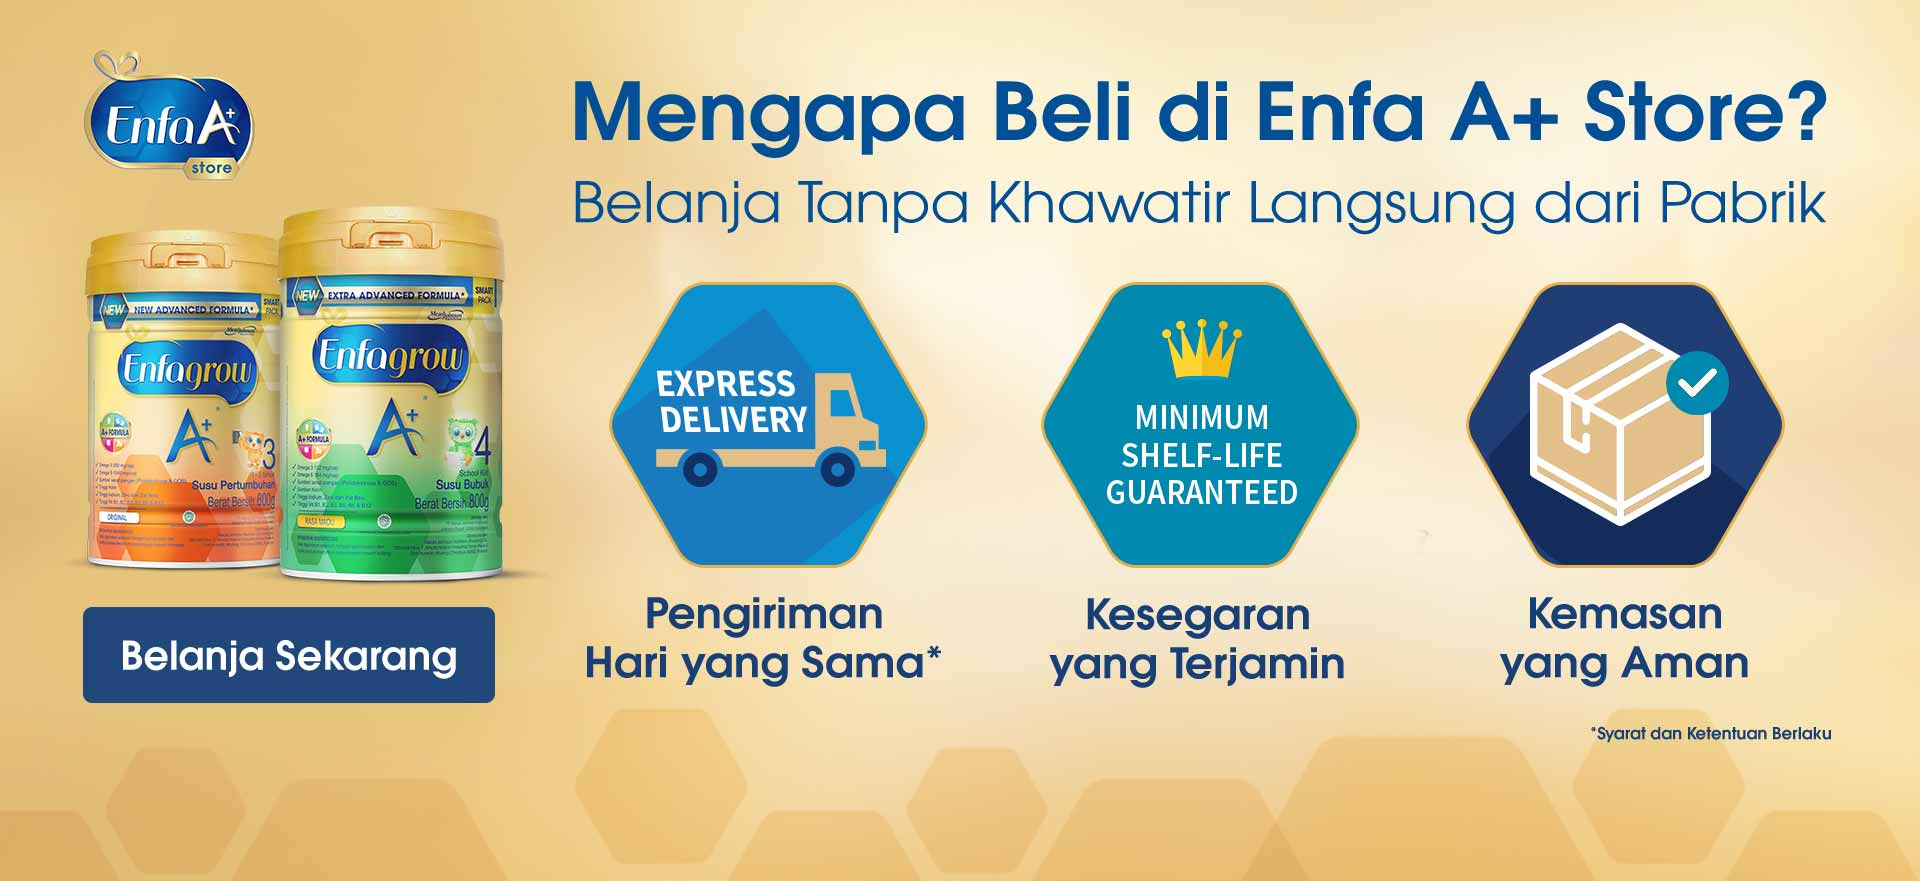 Enfa A+ Store Indonesia